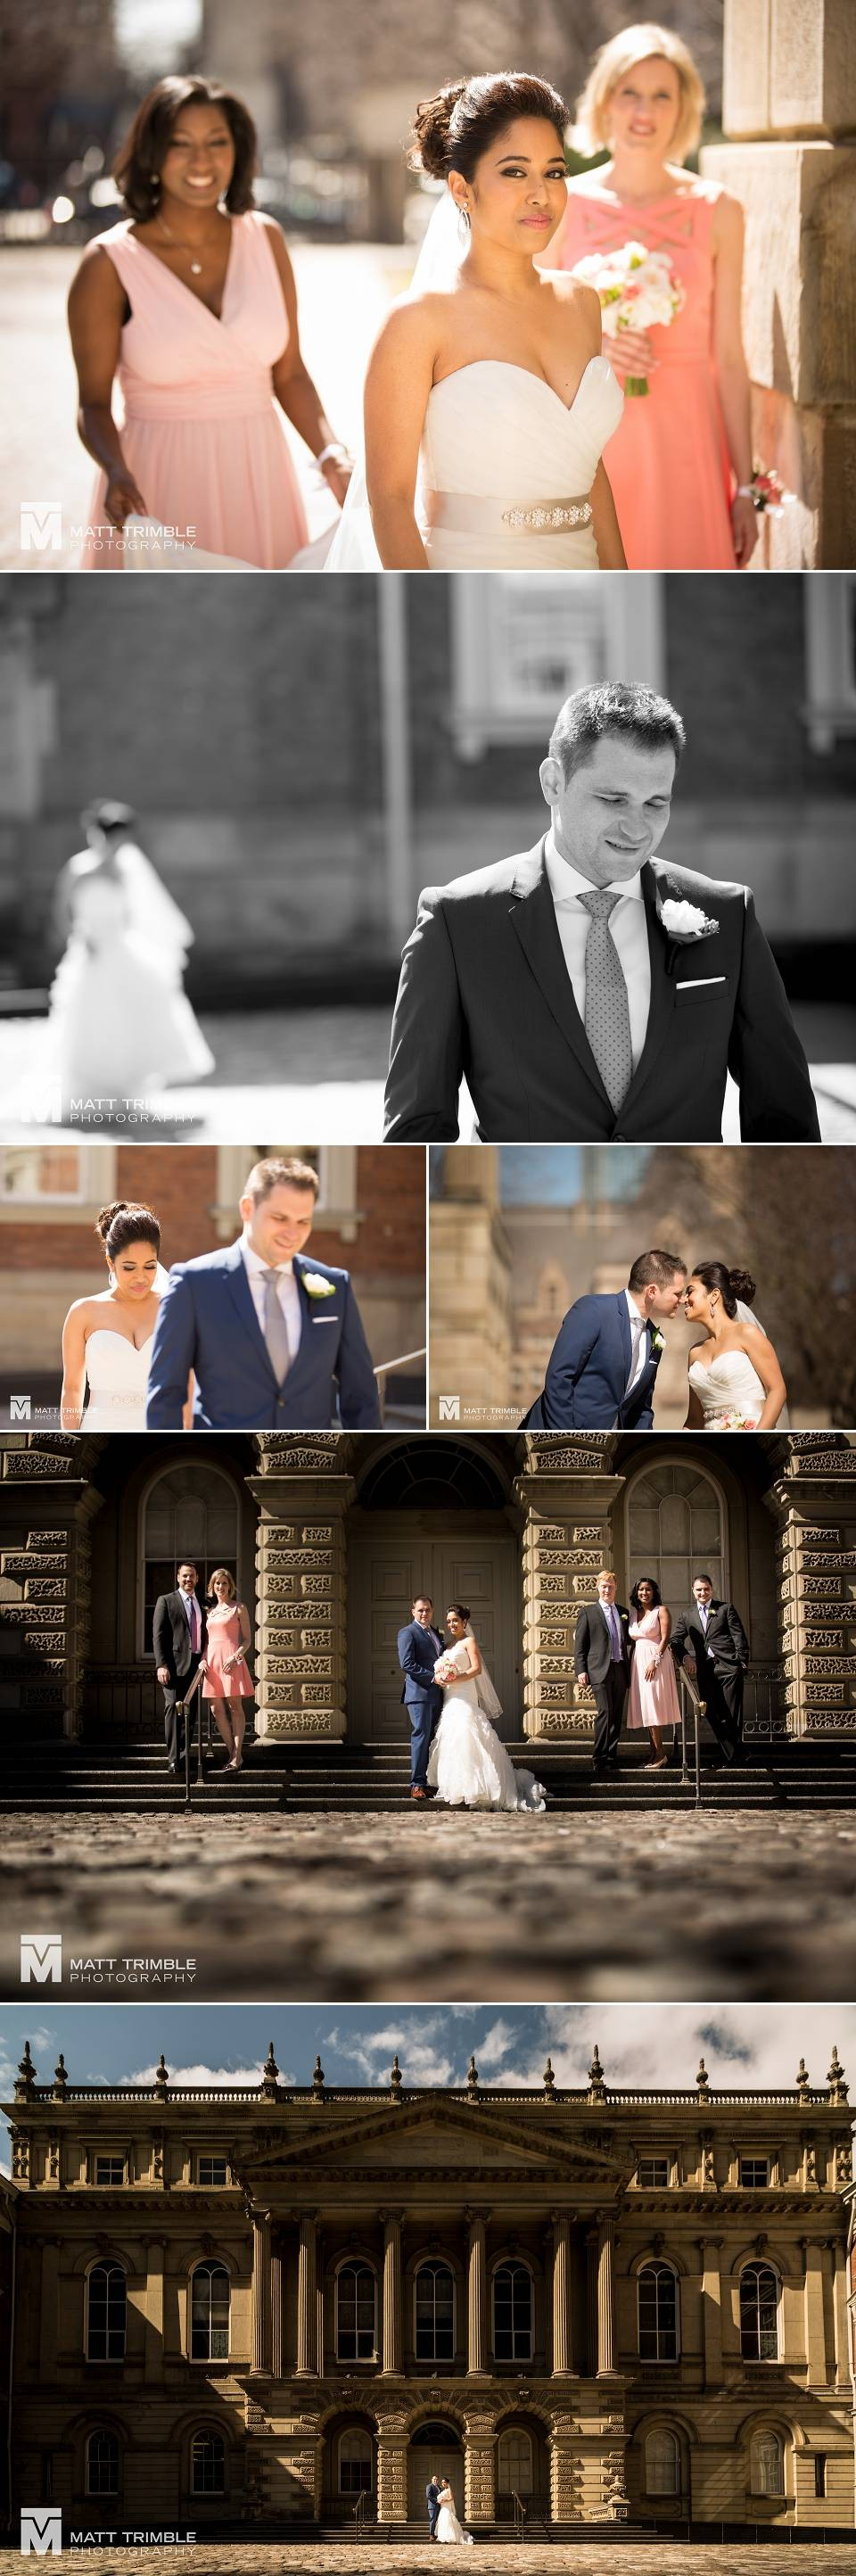 Wedding photography at Toronto Osgoode Hall